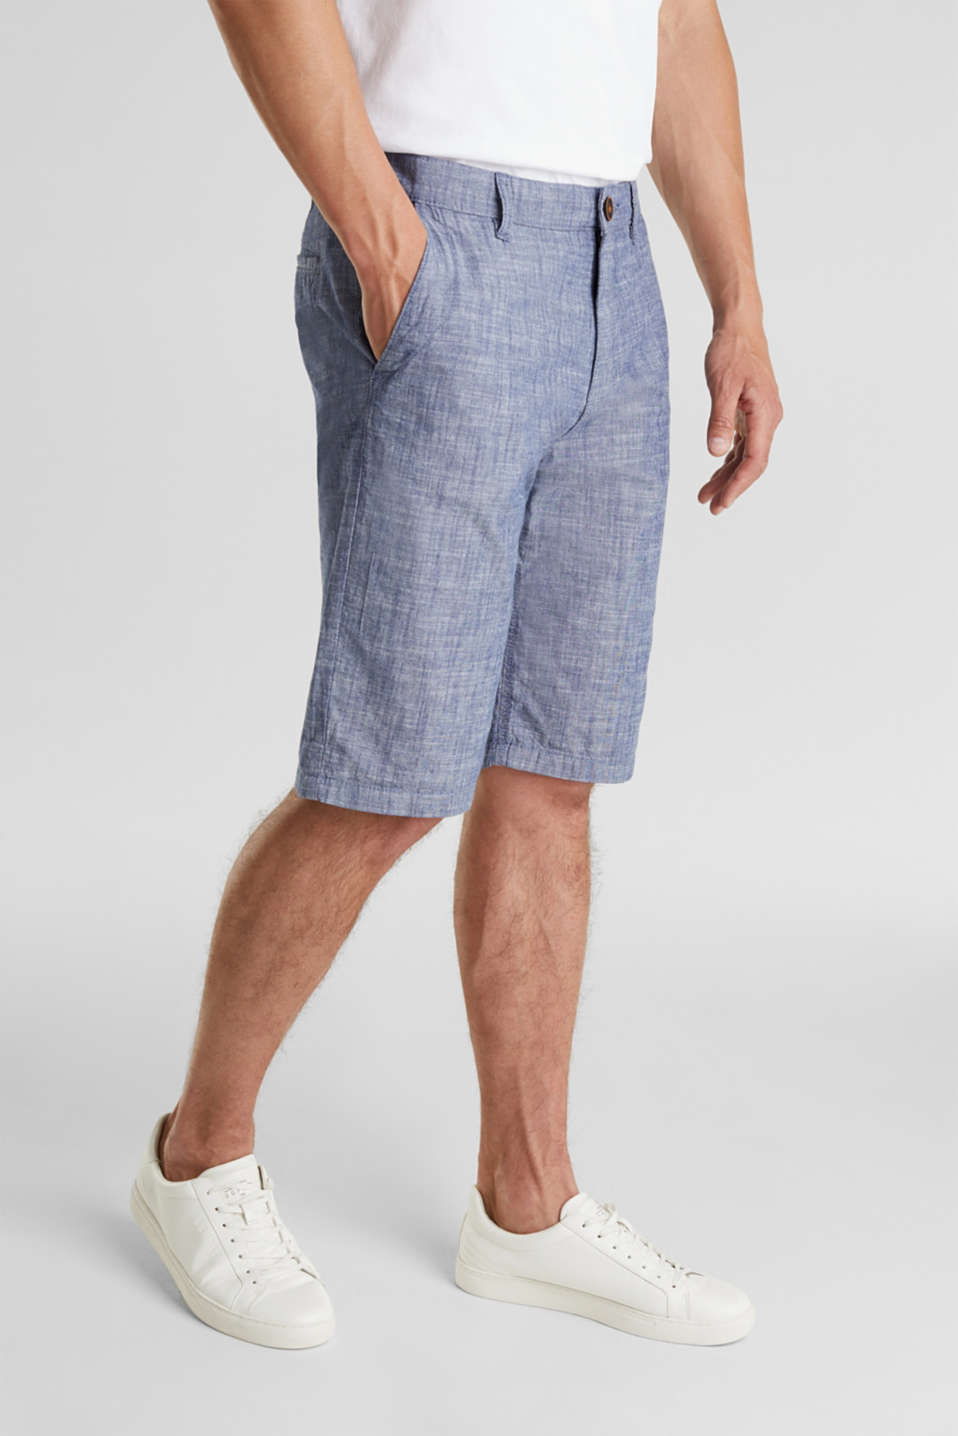 edc - Shorts in chambray stile chino